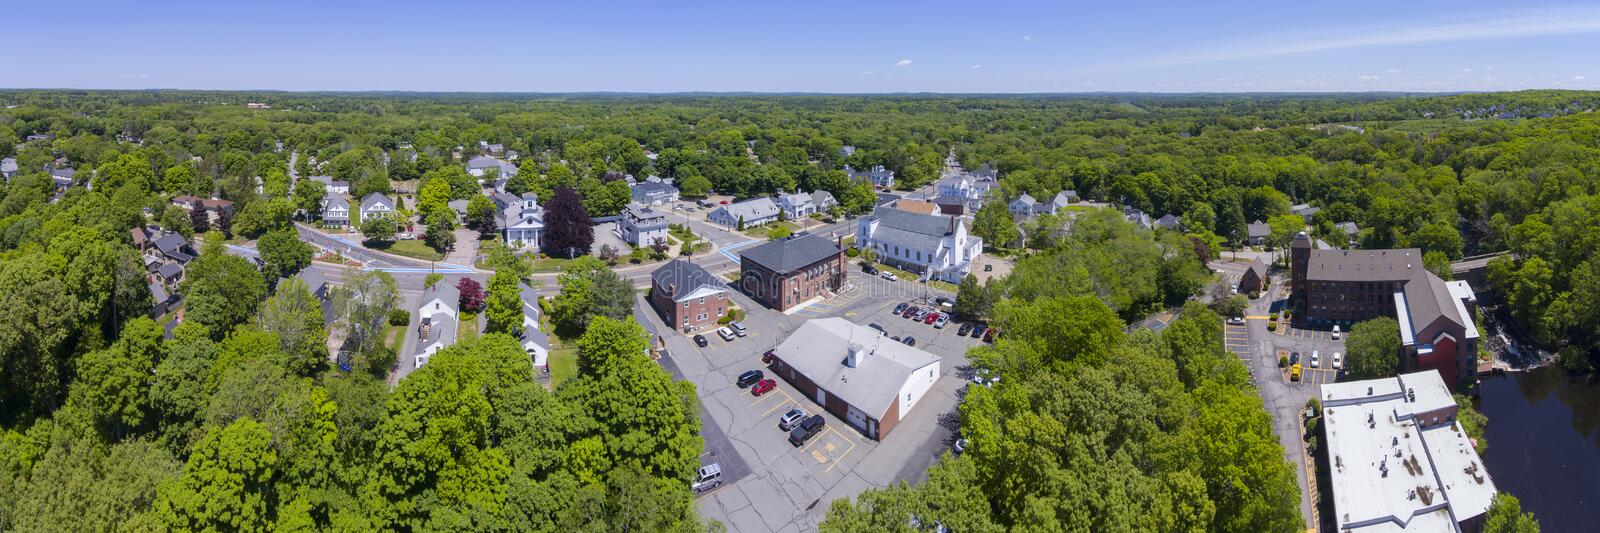 Medway aerial view panorama, Massachusetts, USA. Aerial view of Medway historic town center and Village Street panorama in summer, Medway, Boston Metro West area royalty free stock photo